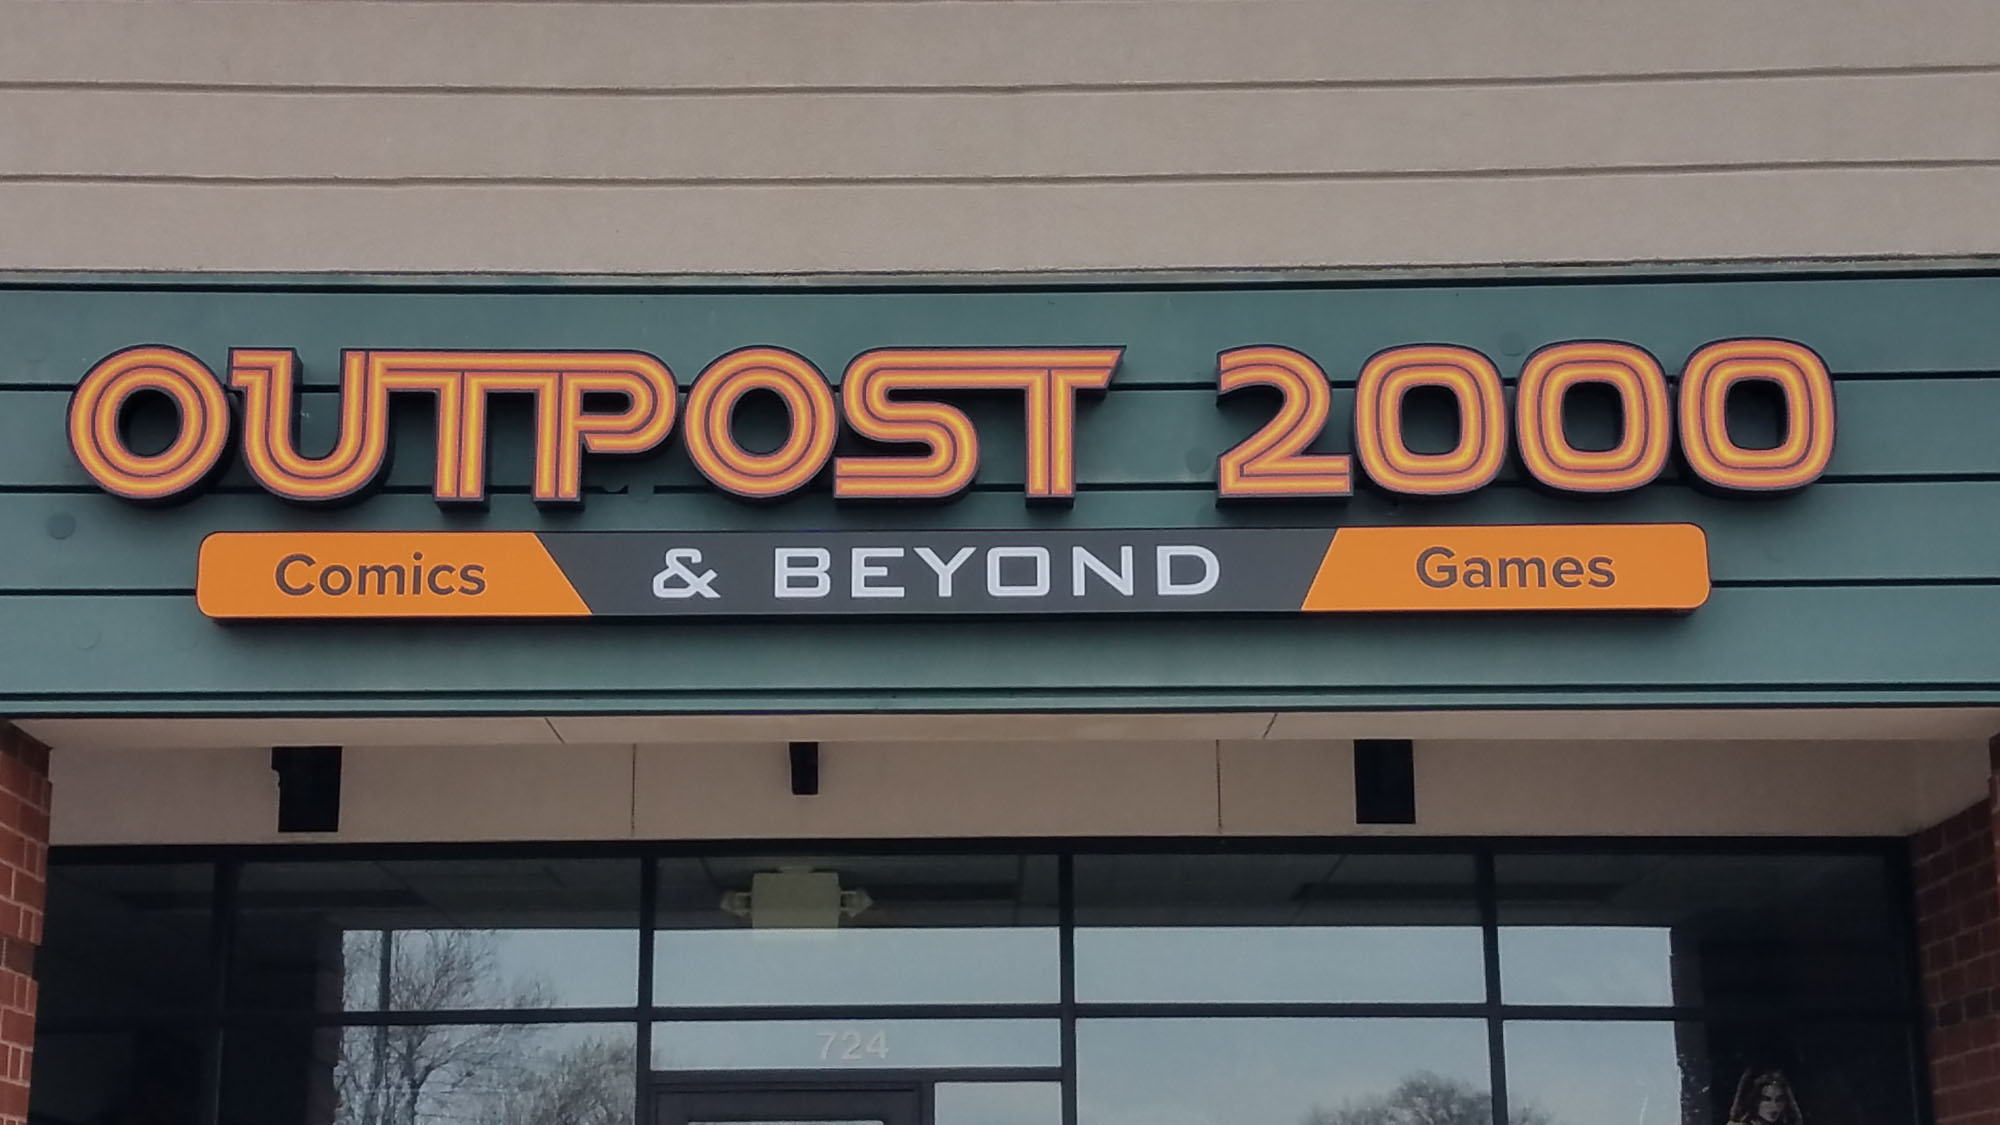 Outpost 2000 Blaine, Minnesota Channel letters with digital printed faces LED illumination Logo cabinet box Direct mount to building - DeMars Signs Company near Minneapolis, MN